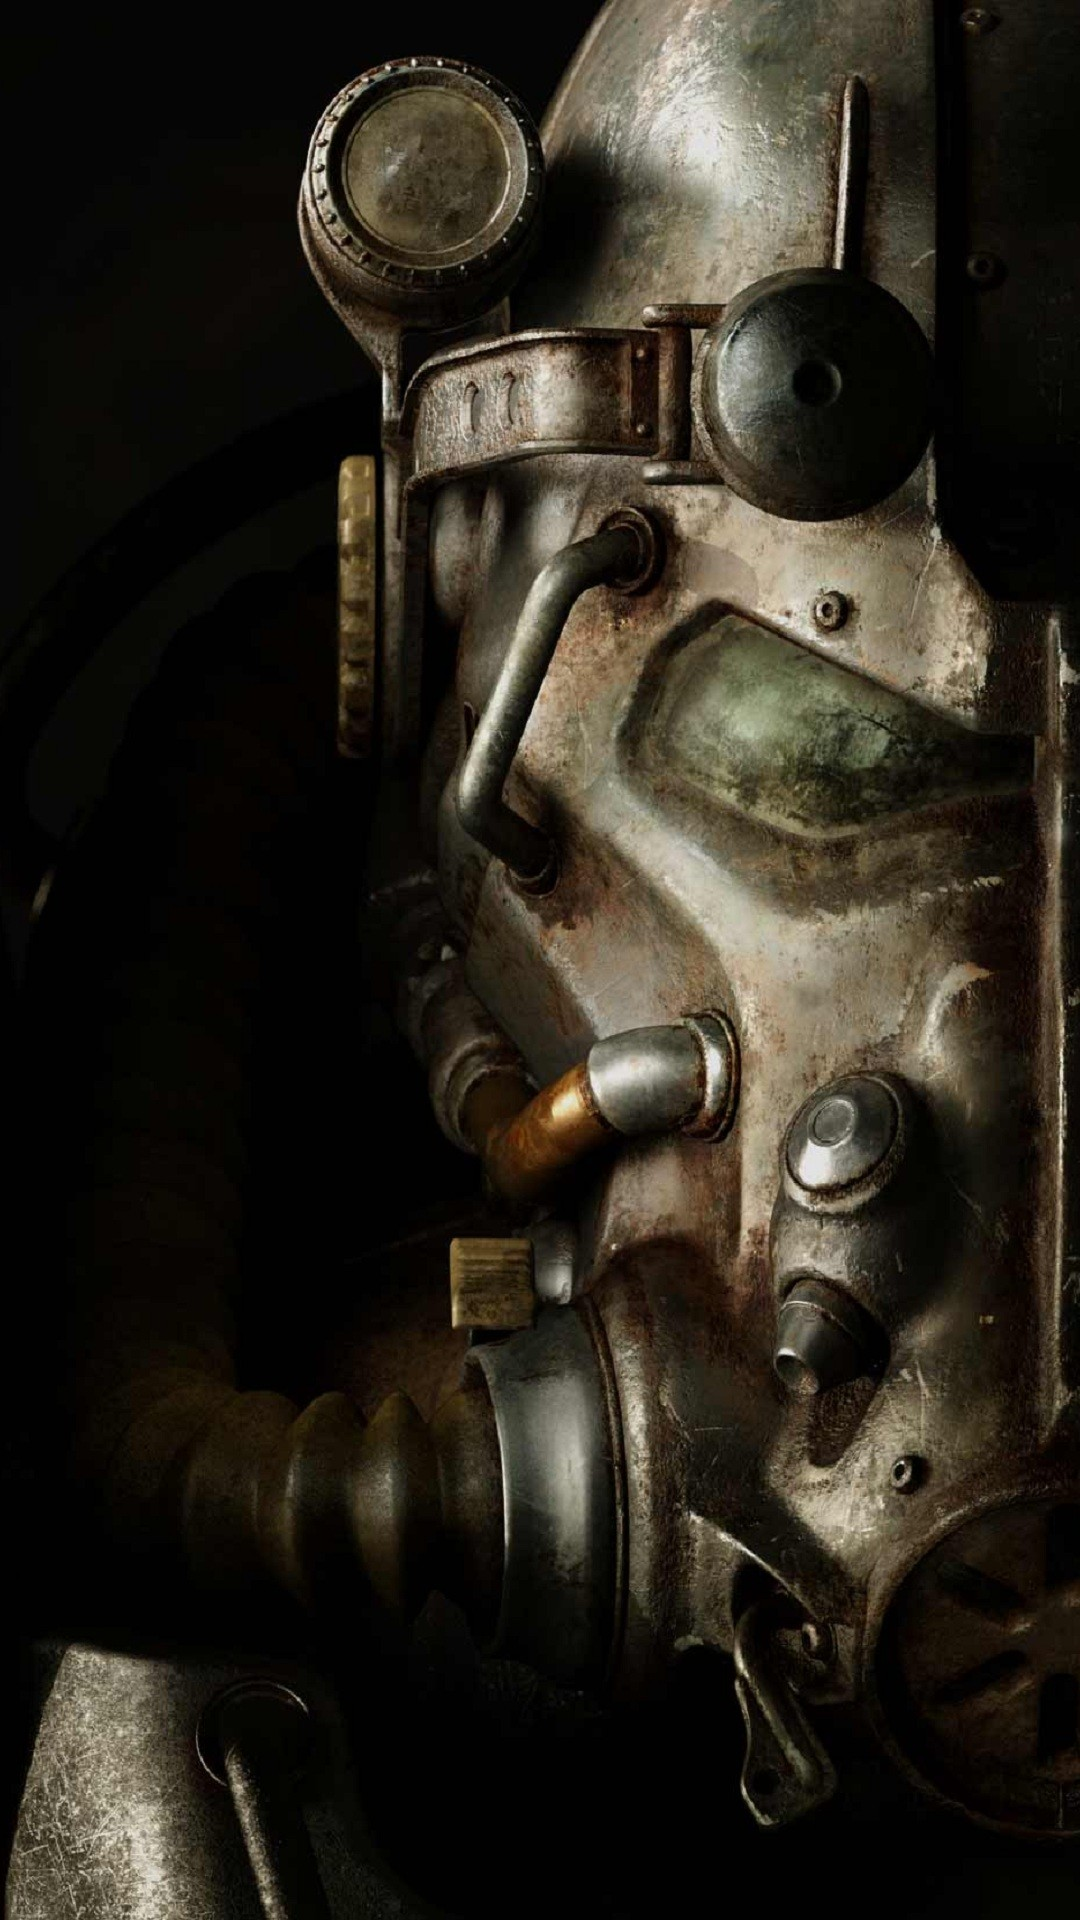 15 18 Fallout 4 Wallpapers for Mobile!